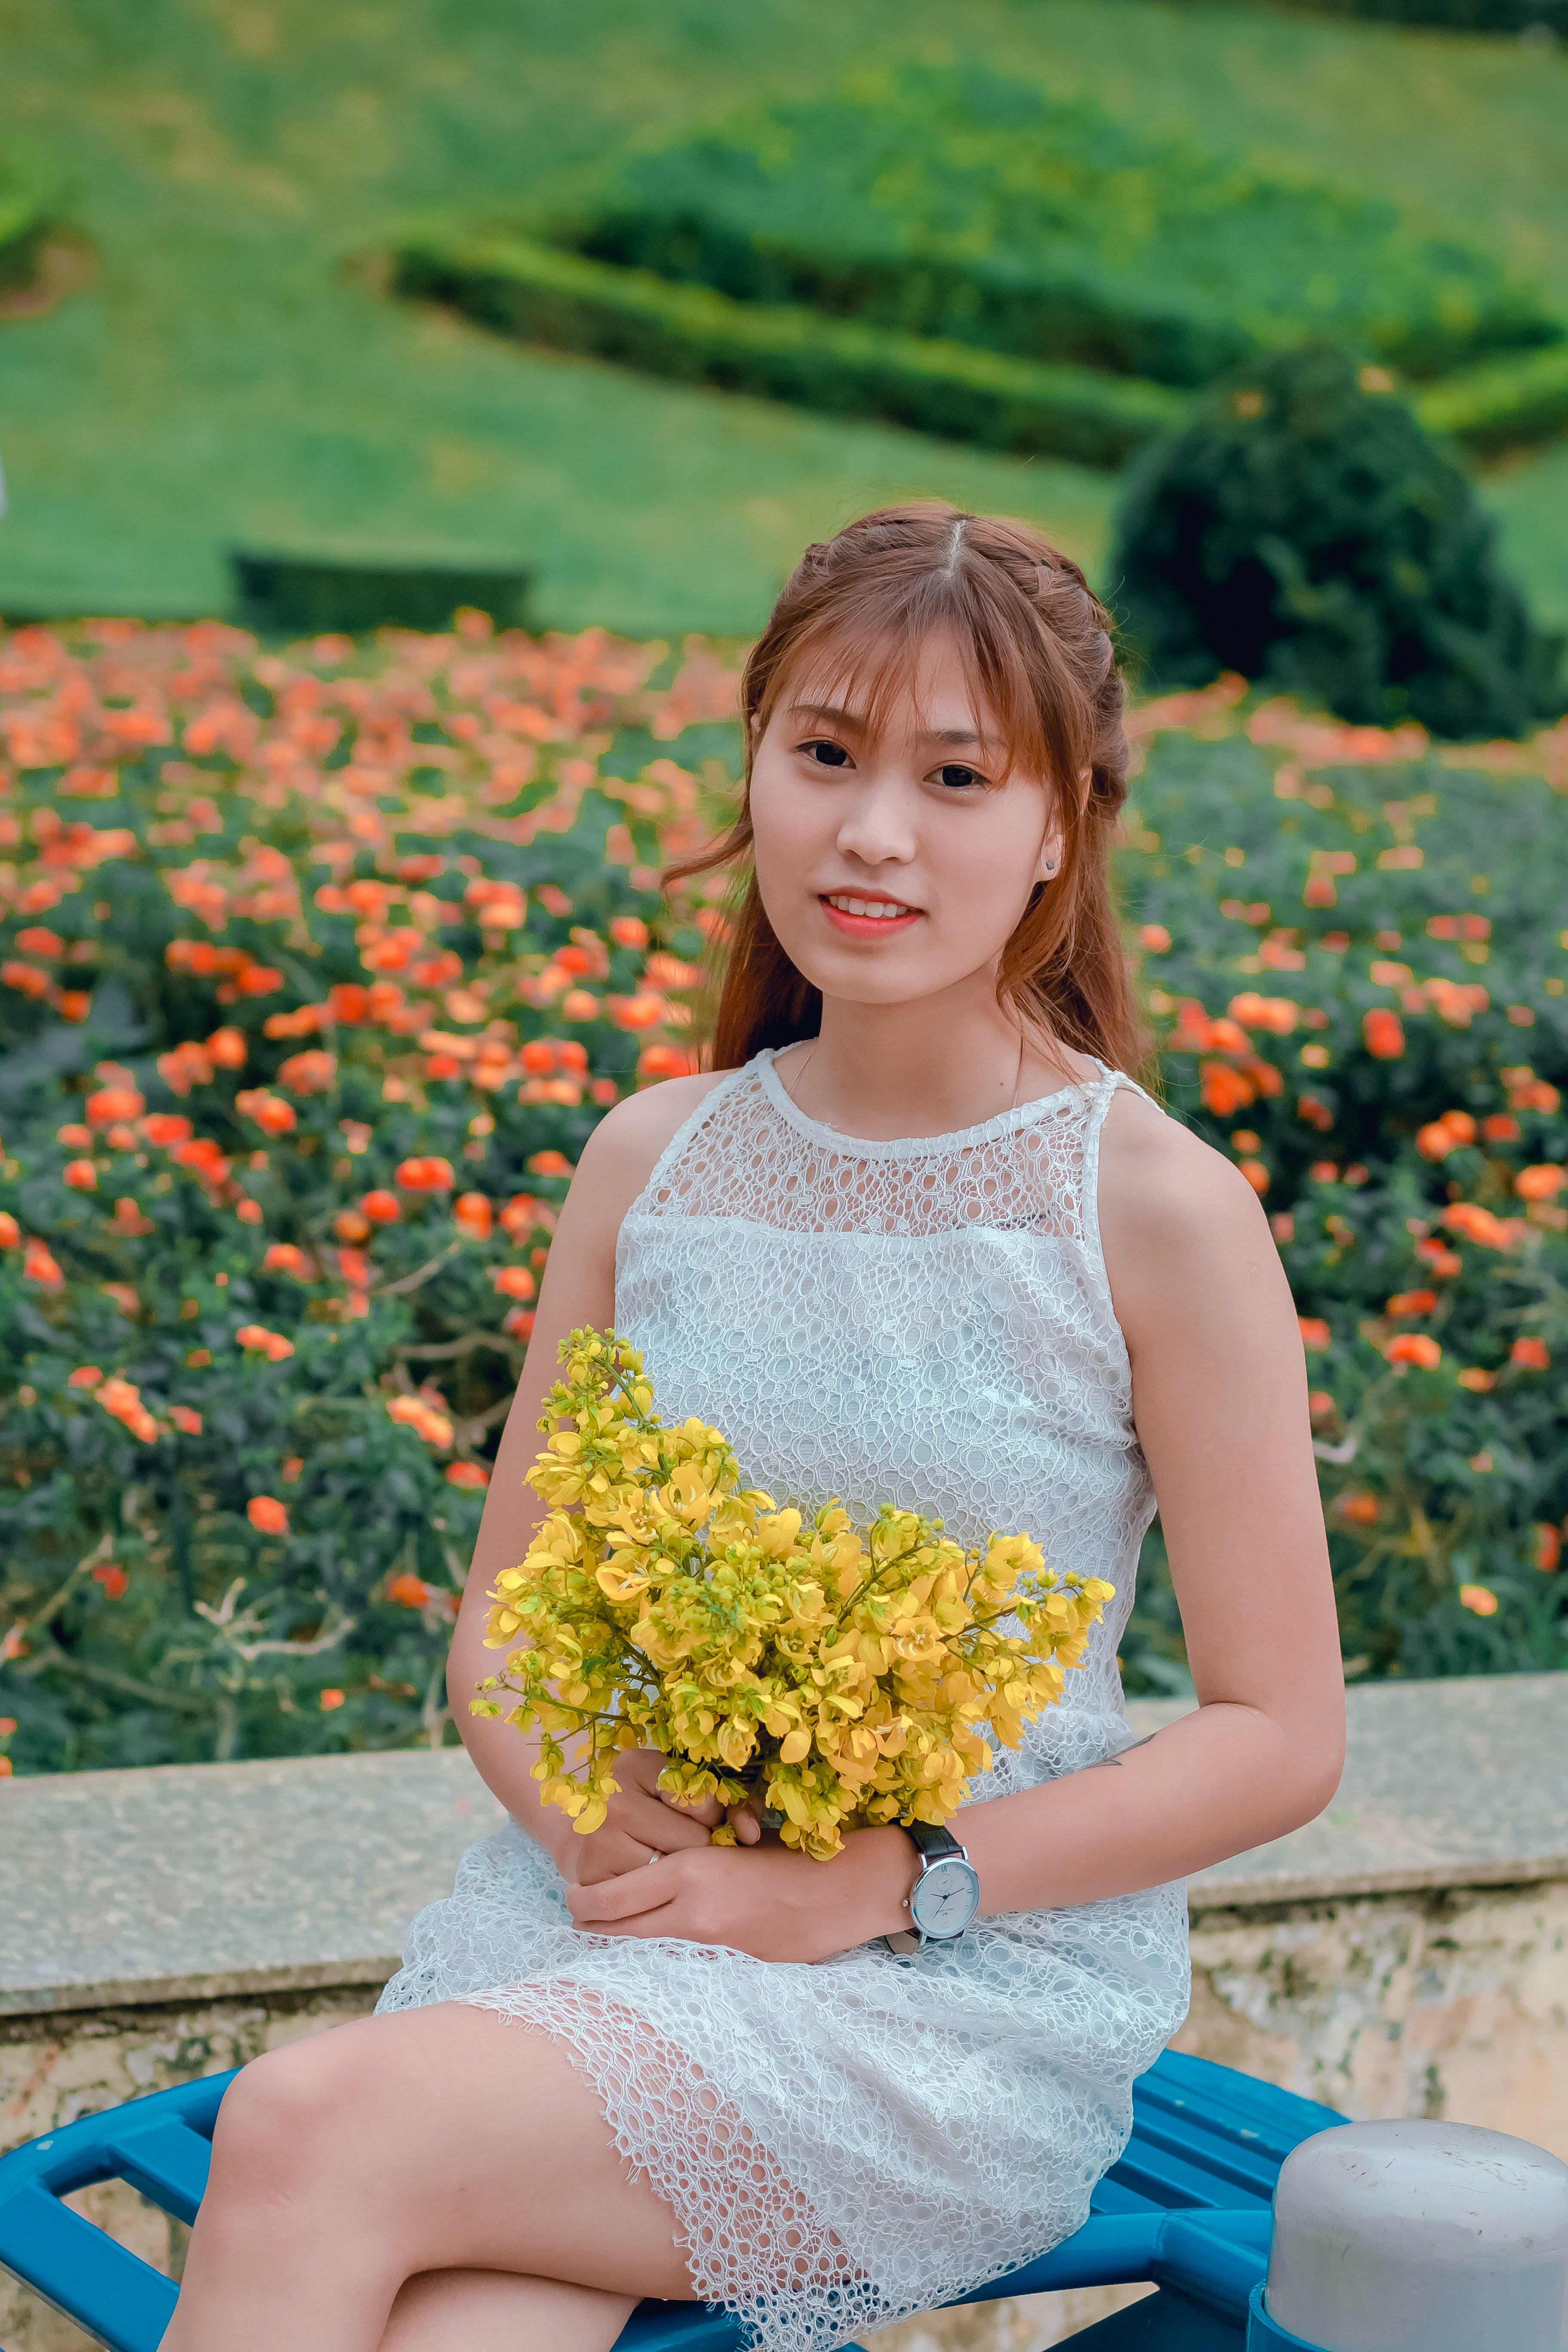 Focus Photo of Woman Wearing Dress While Holding Bouquet of Yellow Flowers